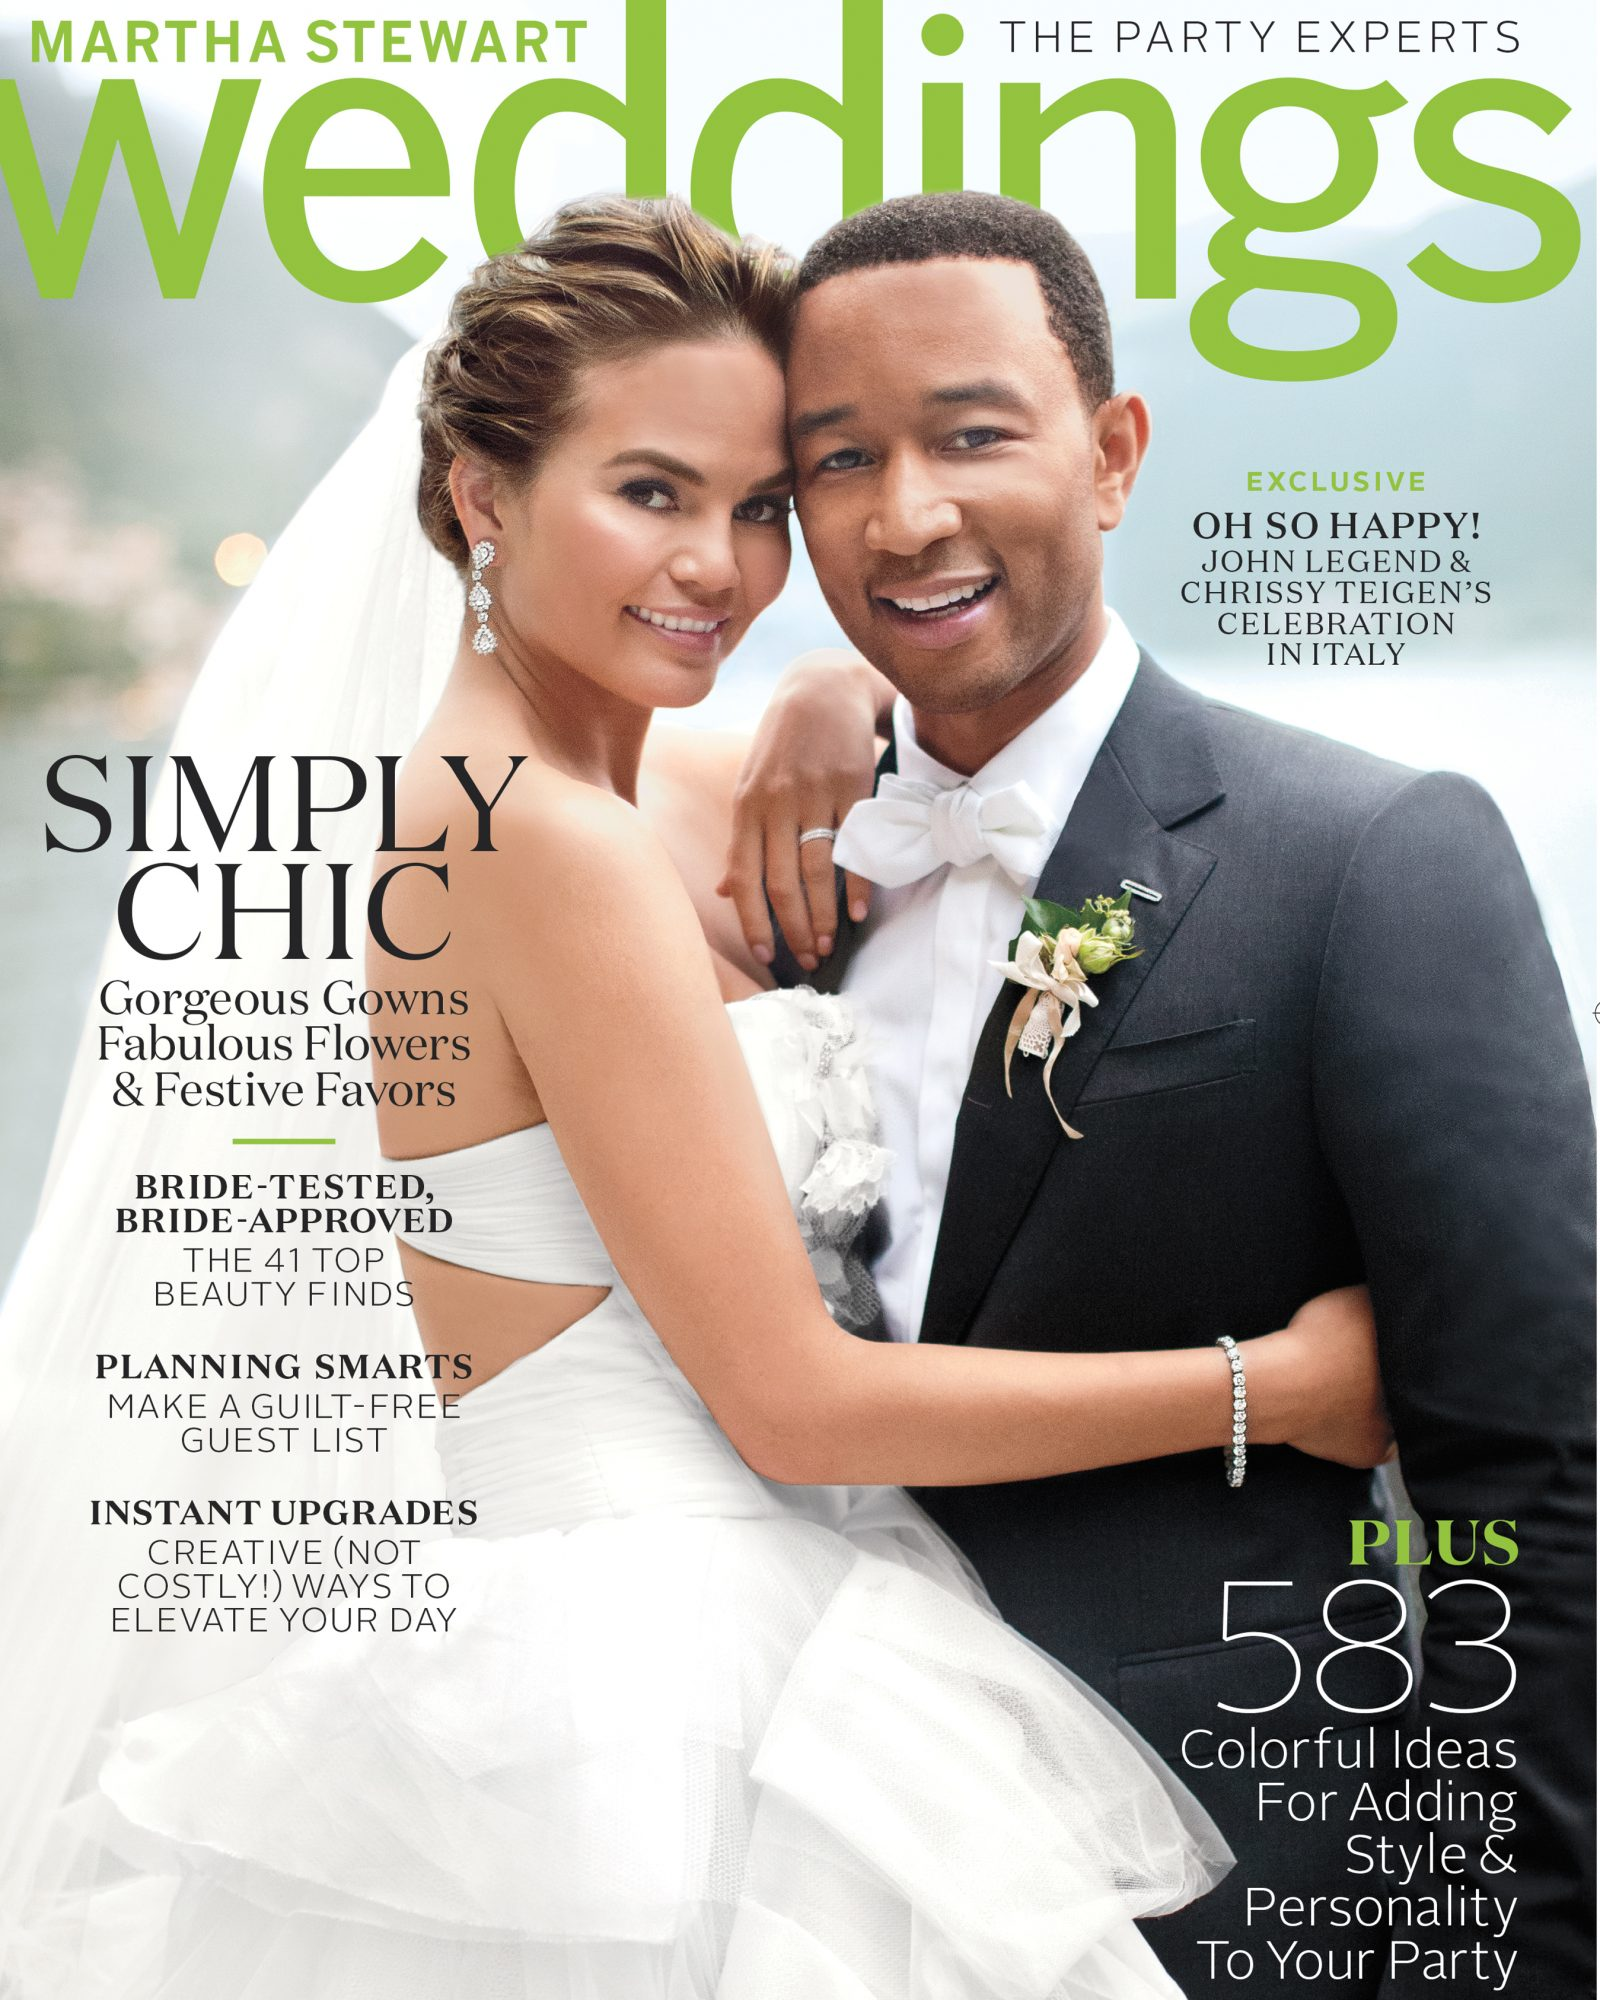 coverlines-brideandgroom-johnlegend-christytiegen-1028-finalversion2-mwds110843.jpg